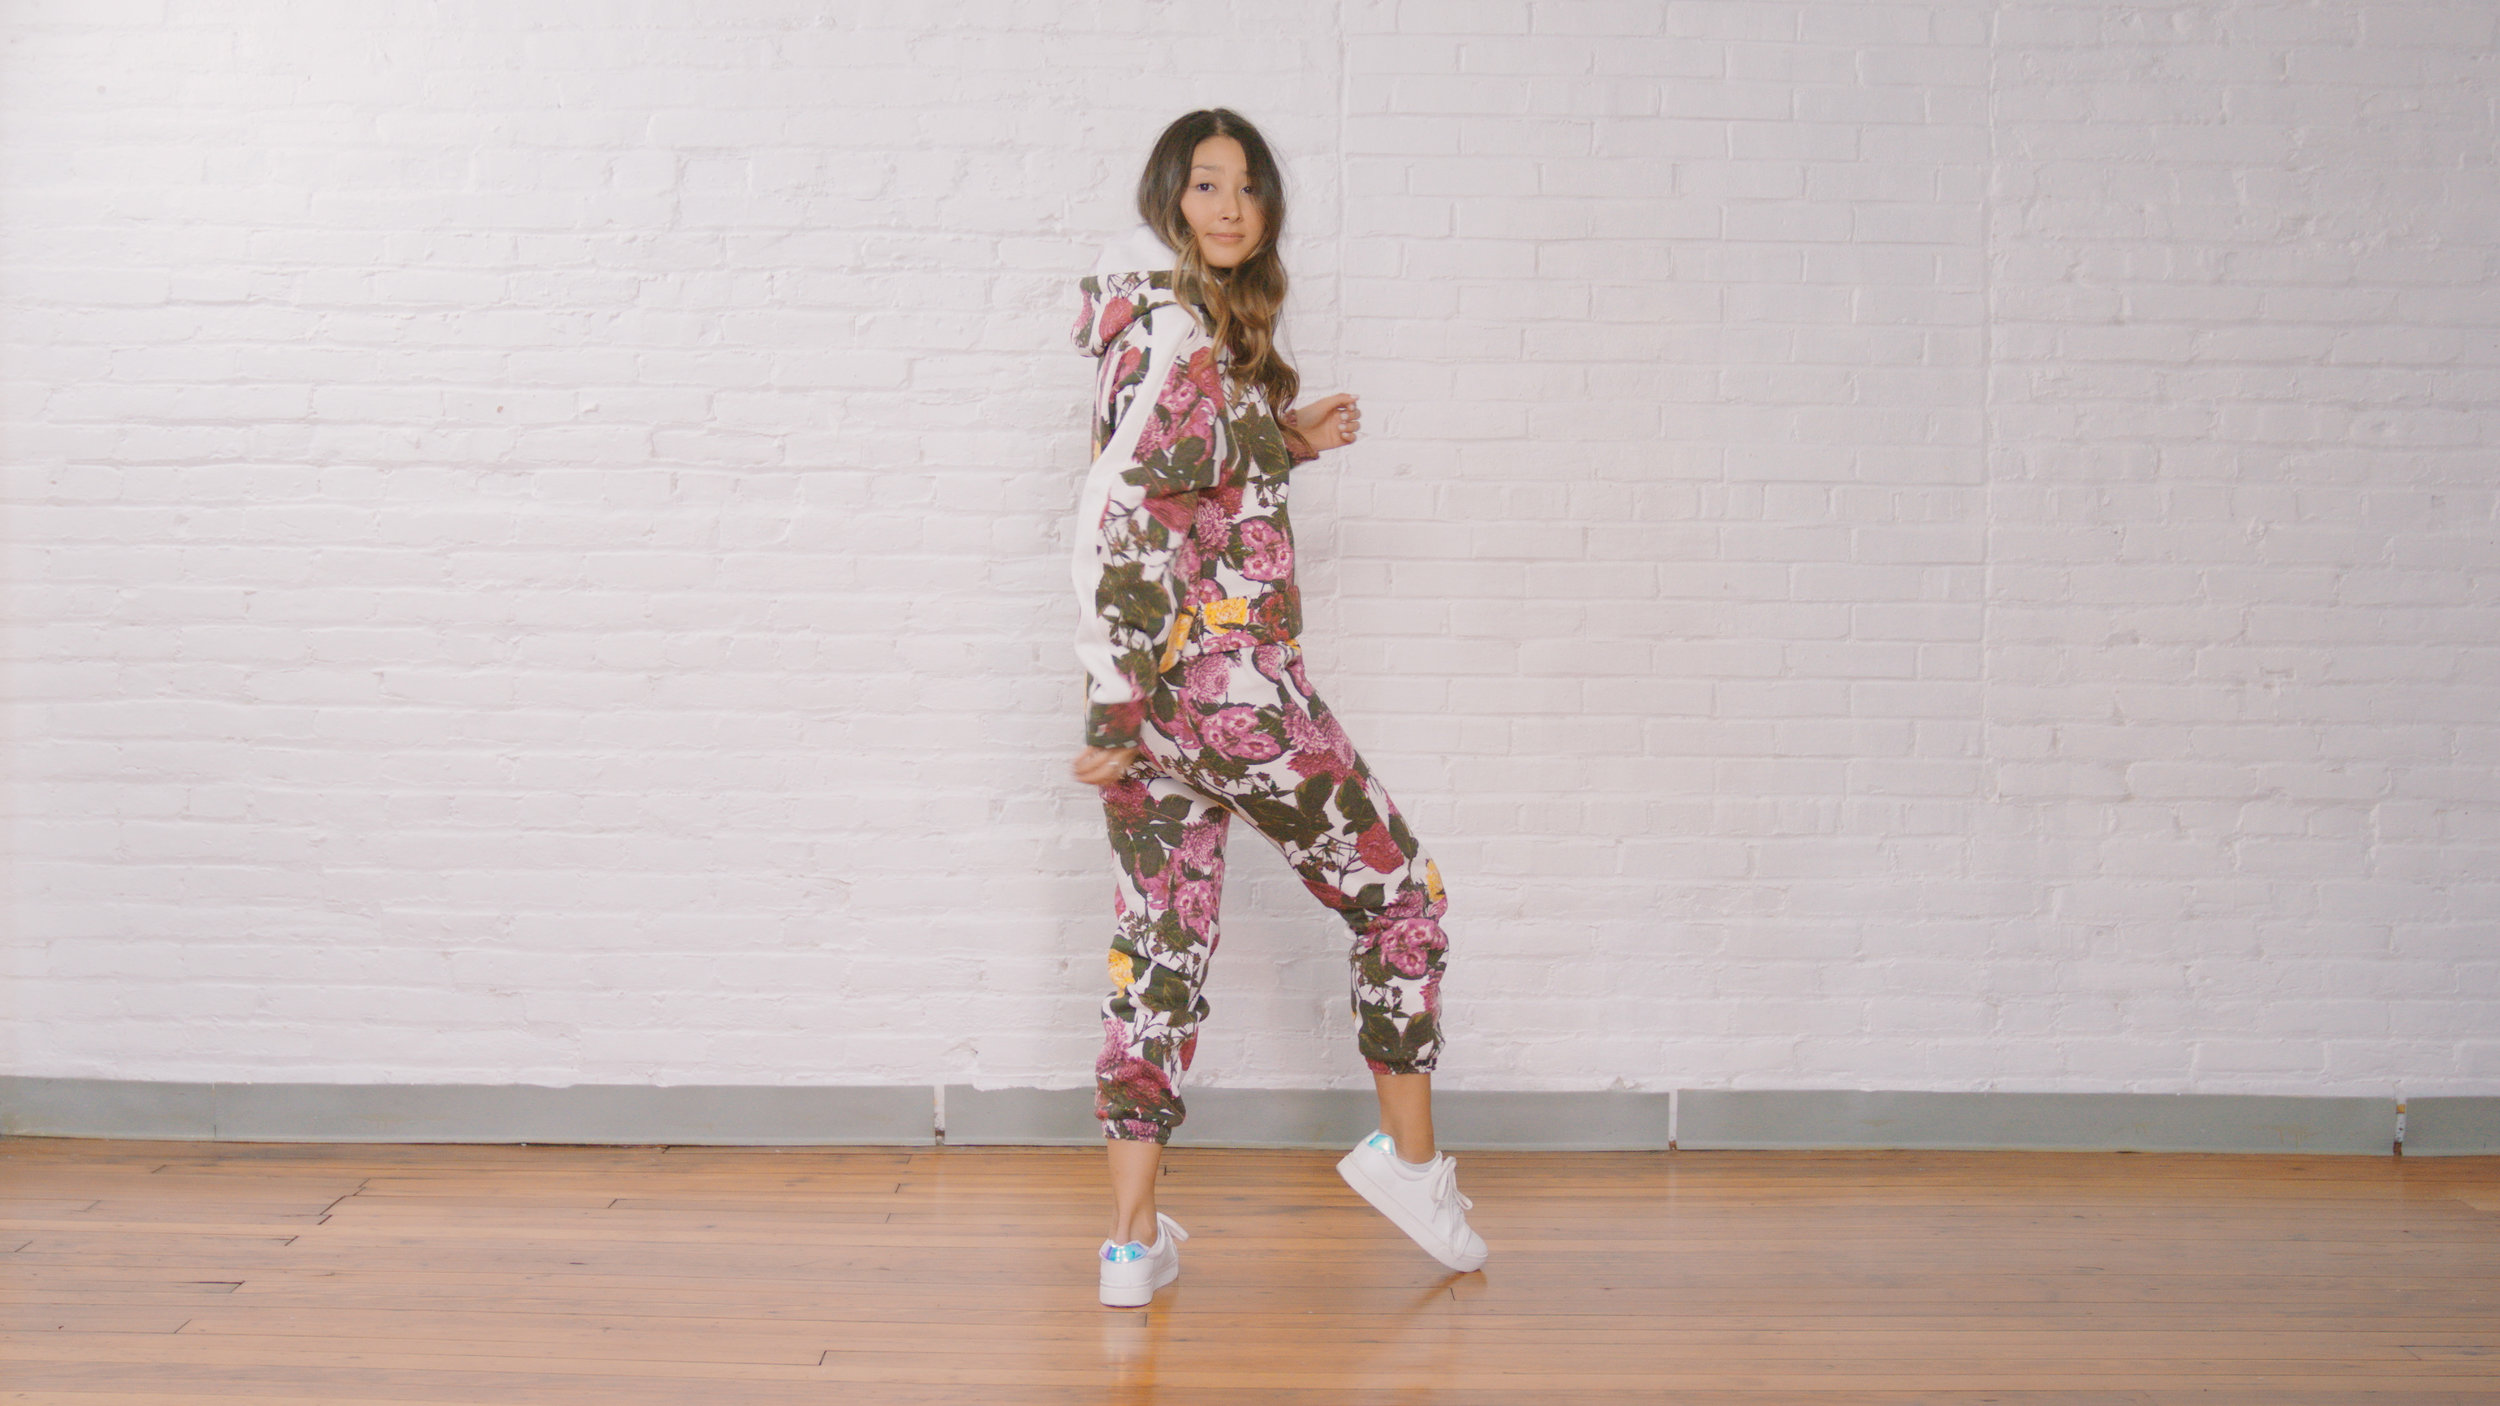 RACHEL ROY FLORAL MATCH SET - Stand out with a vibrant print. This is a great set you can mix and match to dress up and down depending on your lifestyle.